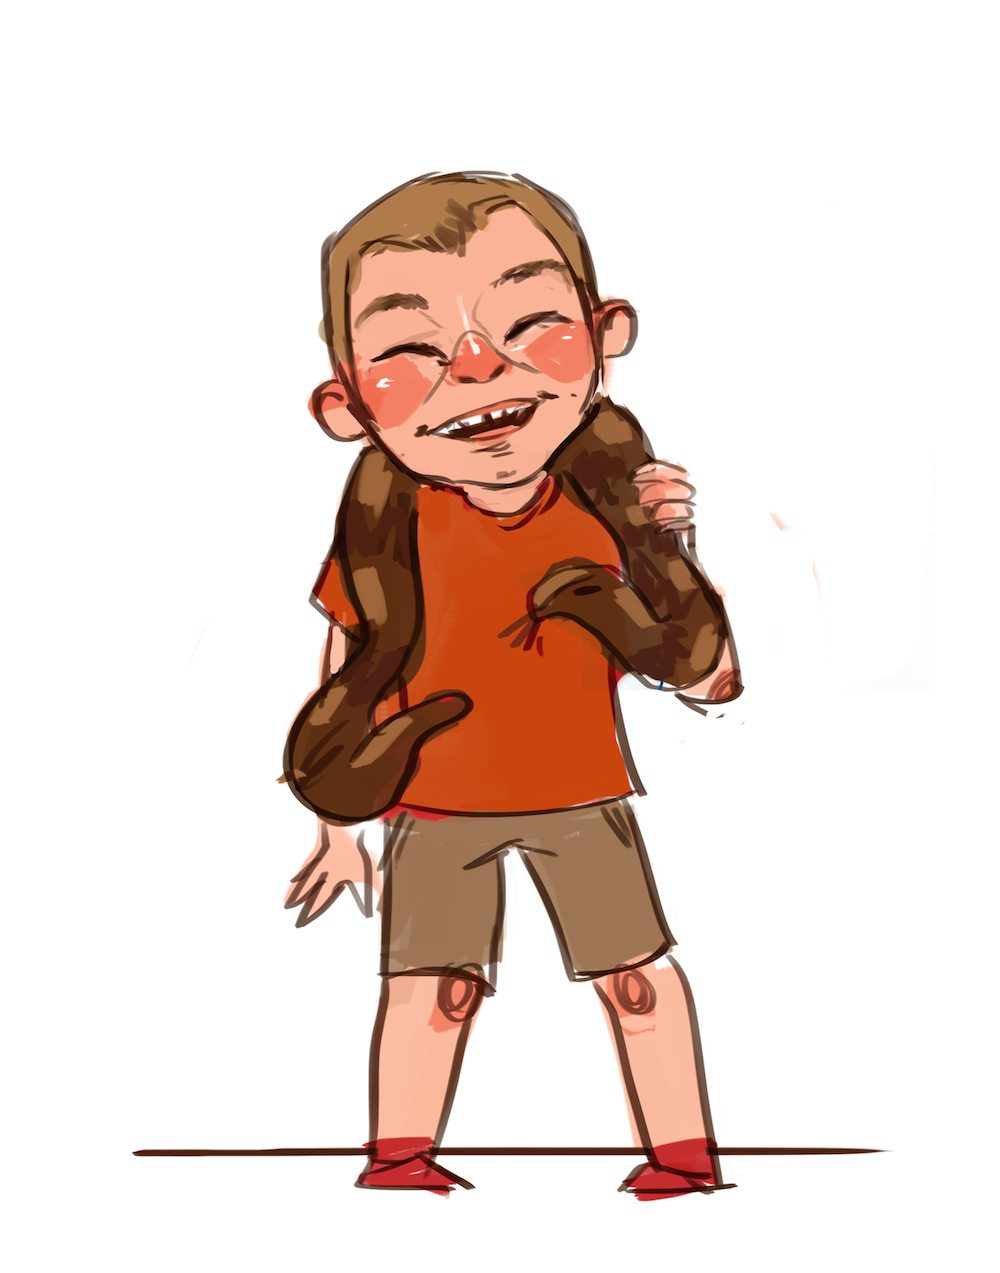 Cartoon Portrait of a Boy with a Snake by Mourphine via ArtCorgi